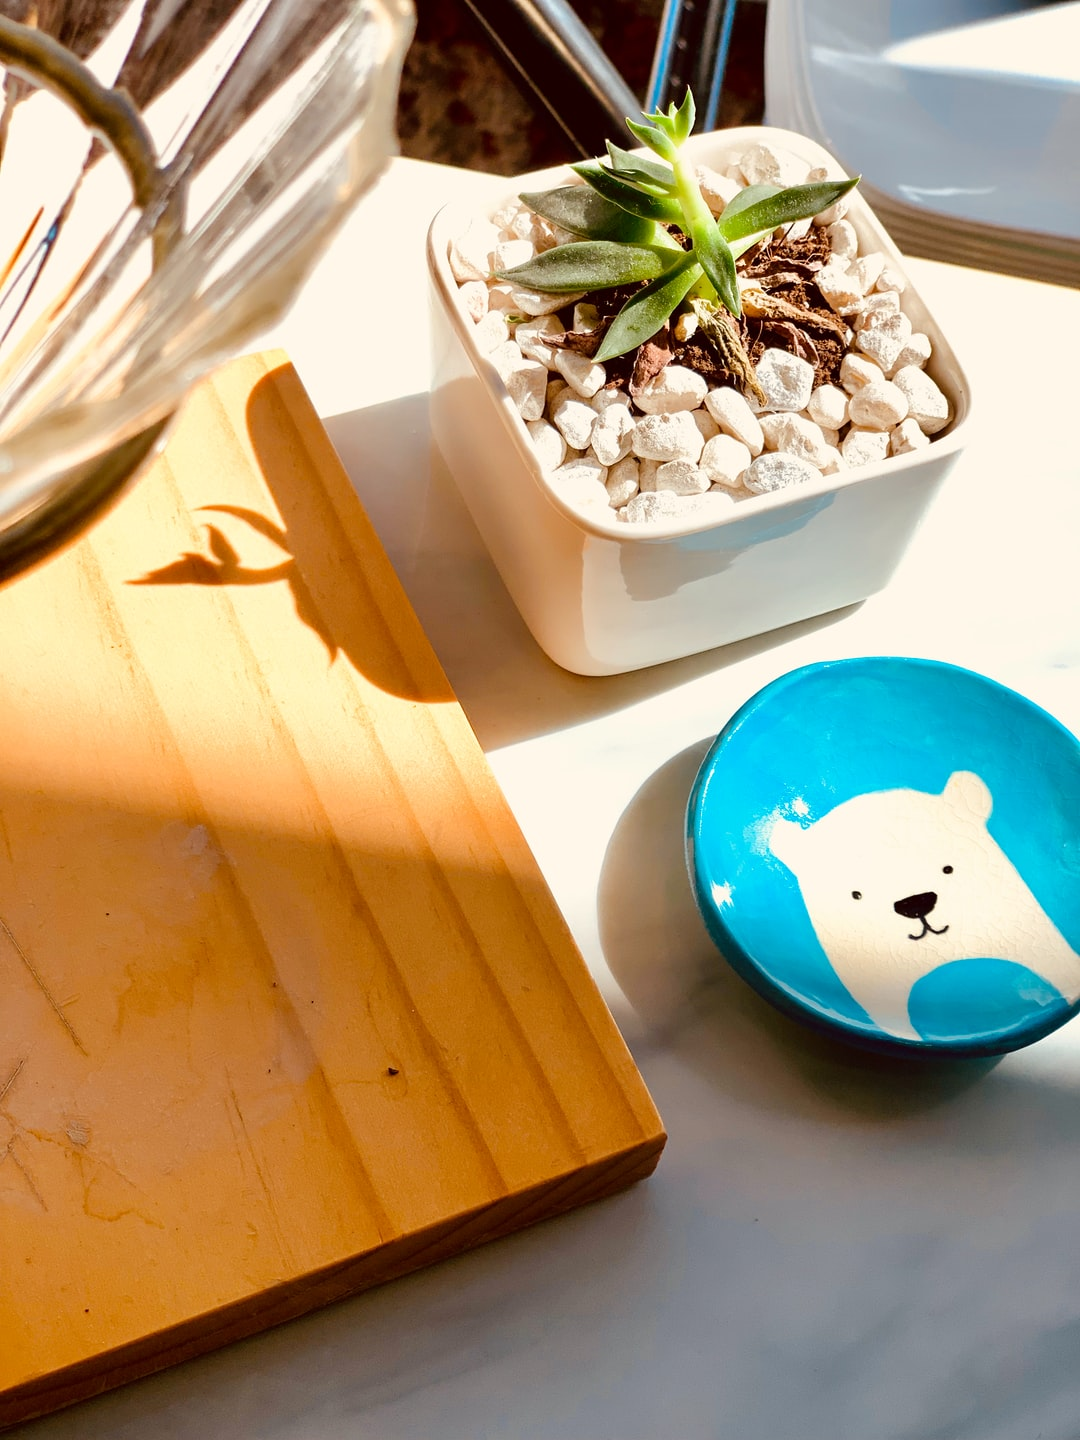 How can you not smile looking at that polar bear https://www.etsy.com/shop/MadeByChanamon   Shot on iPhone   https://www.instagram.com/francistogram/